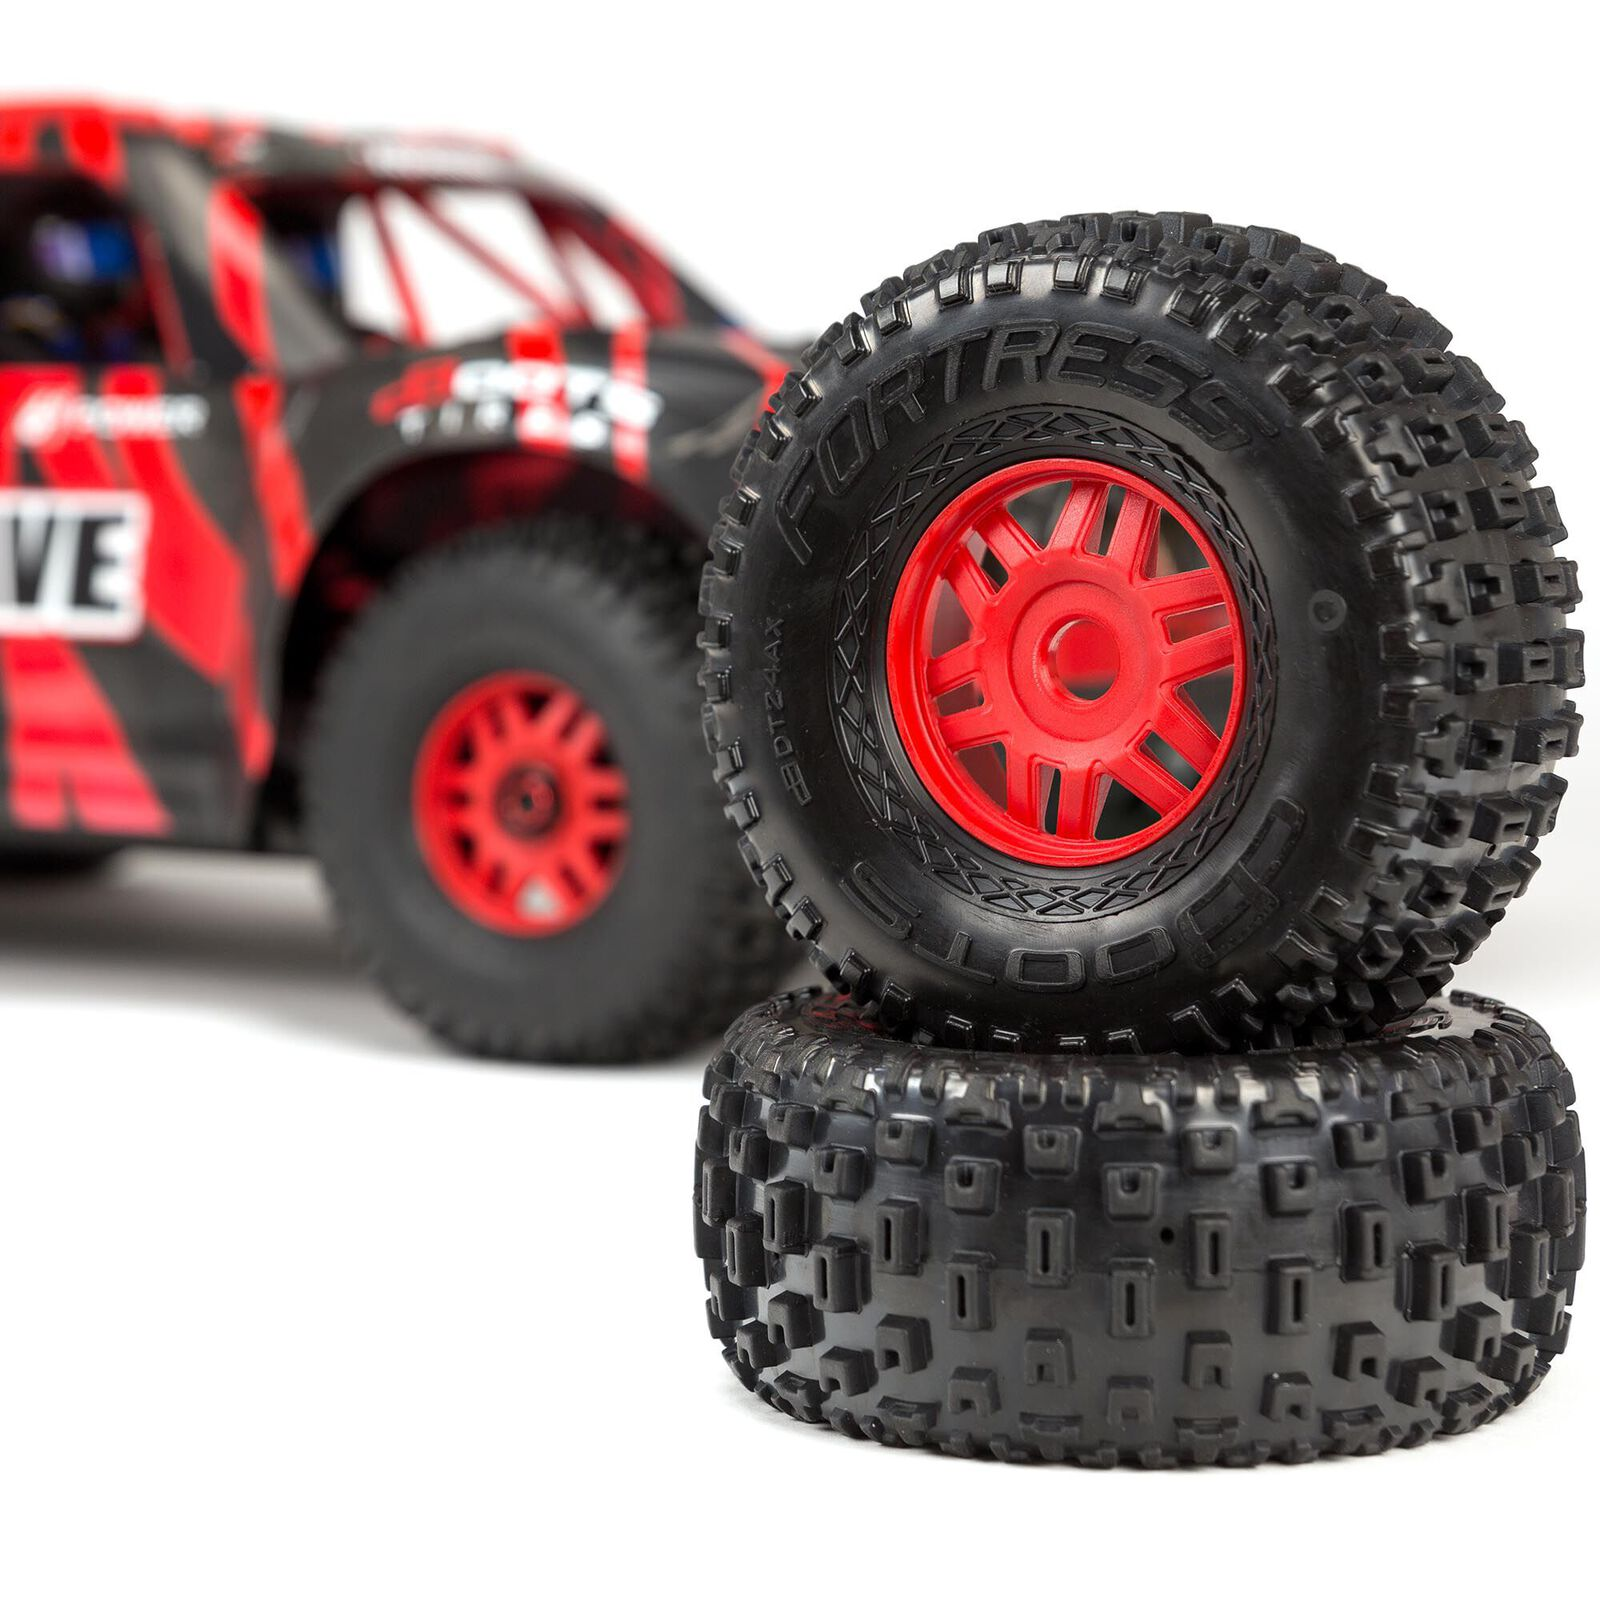 1/7 MOJAVE 6S V2 4WD BLX Desert Truck with Spektrum Firma RTR, Red/Black